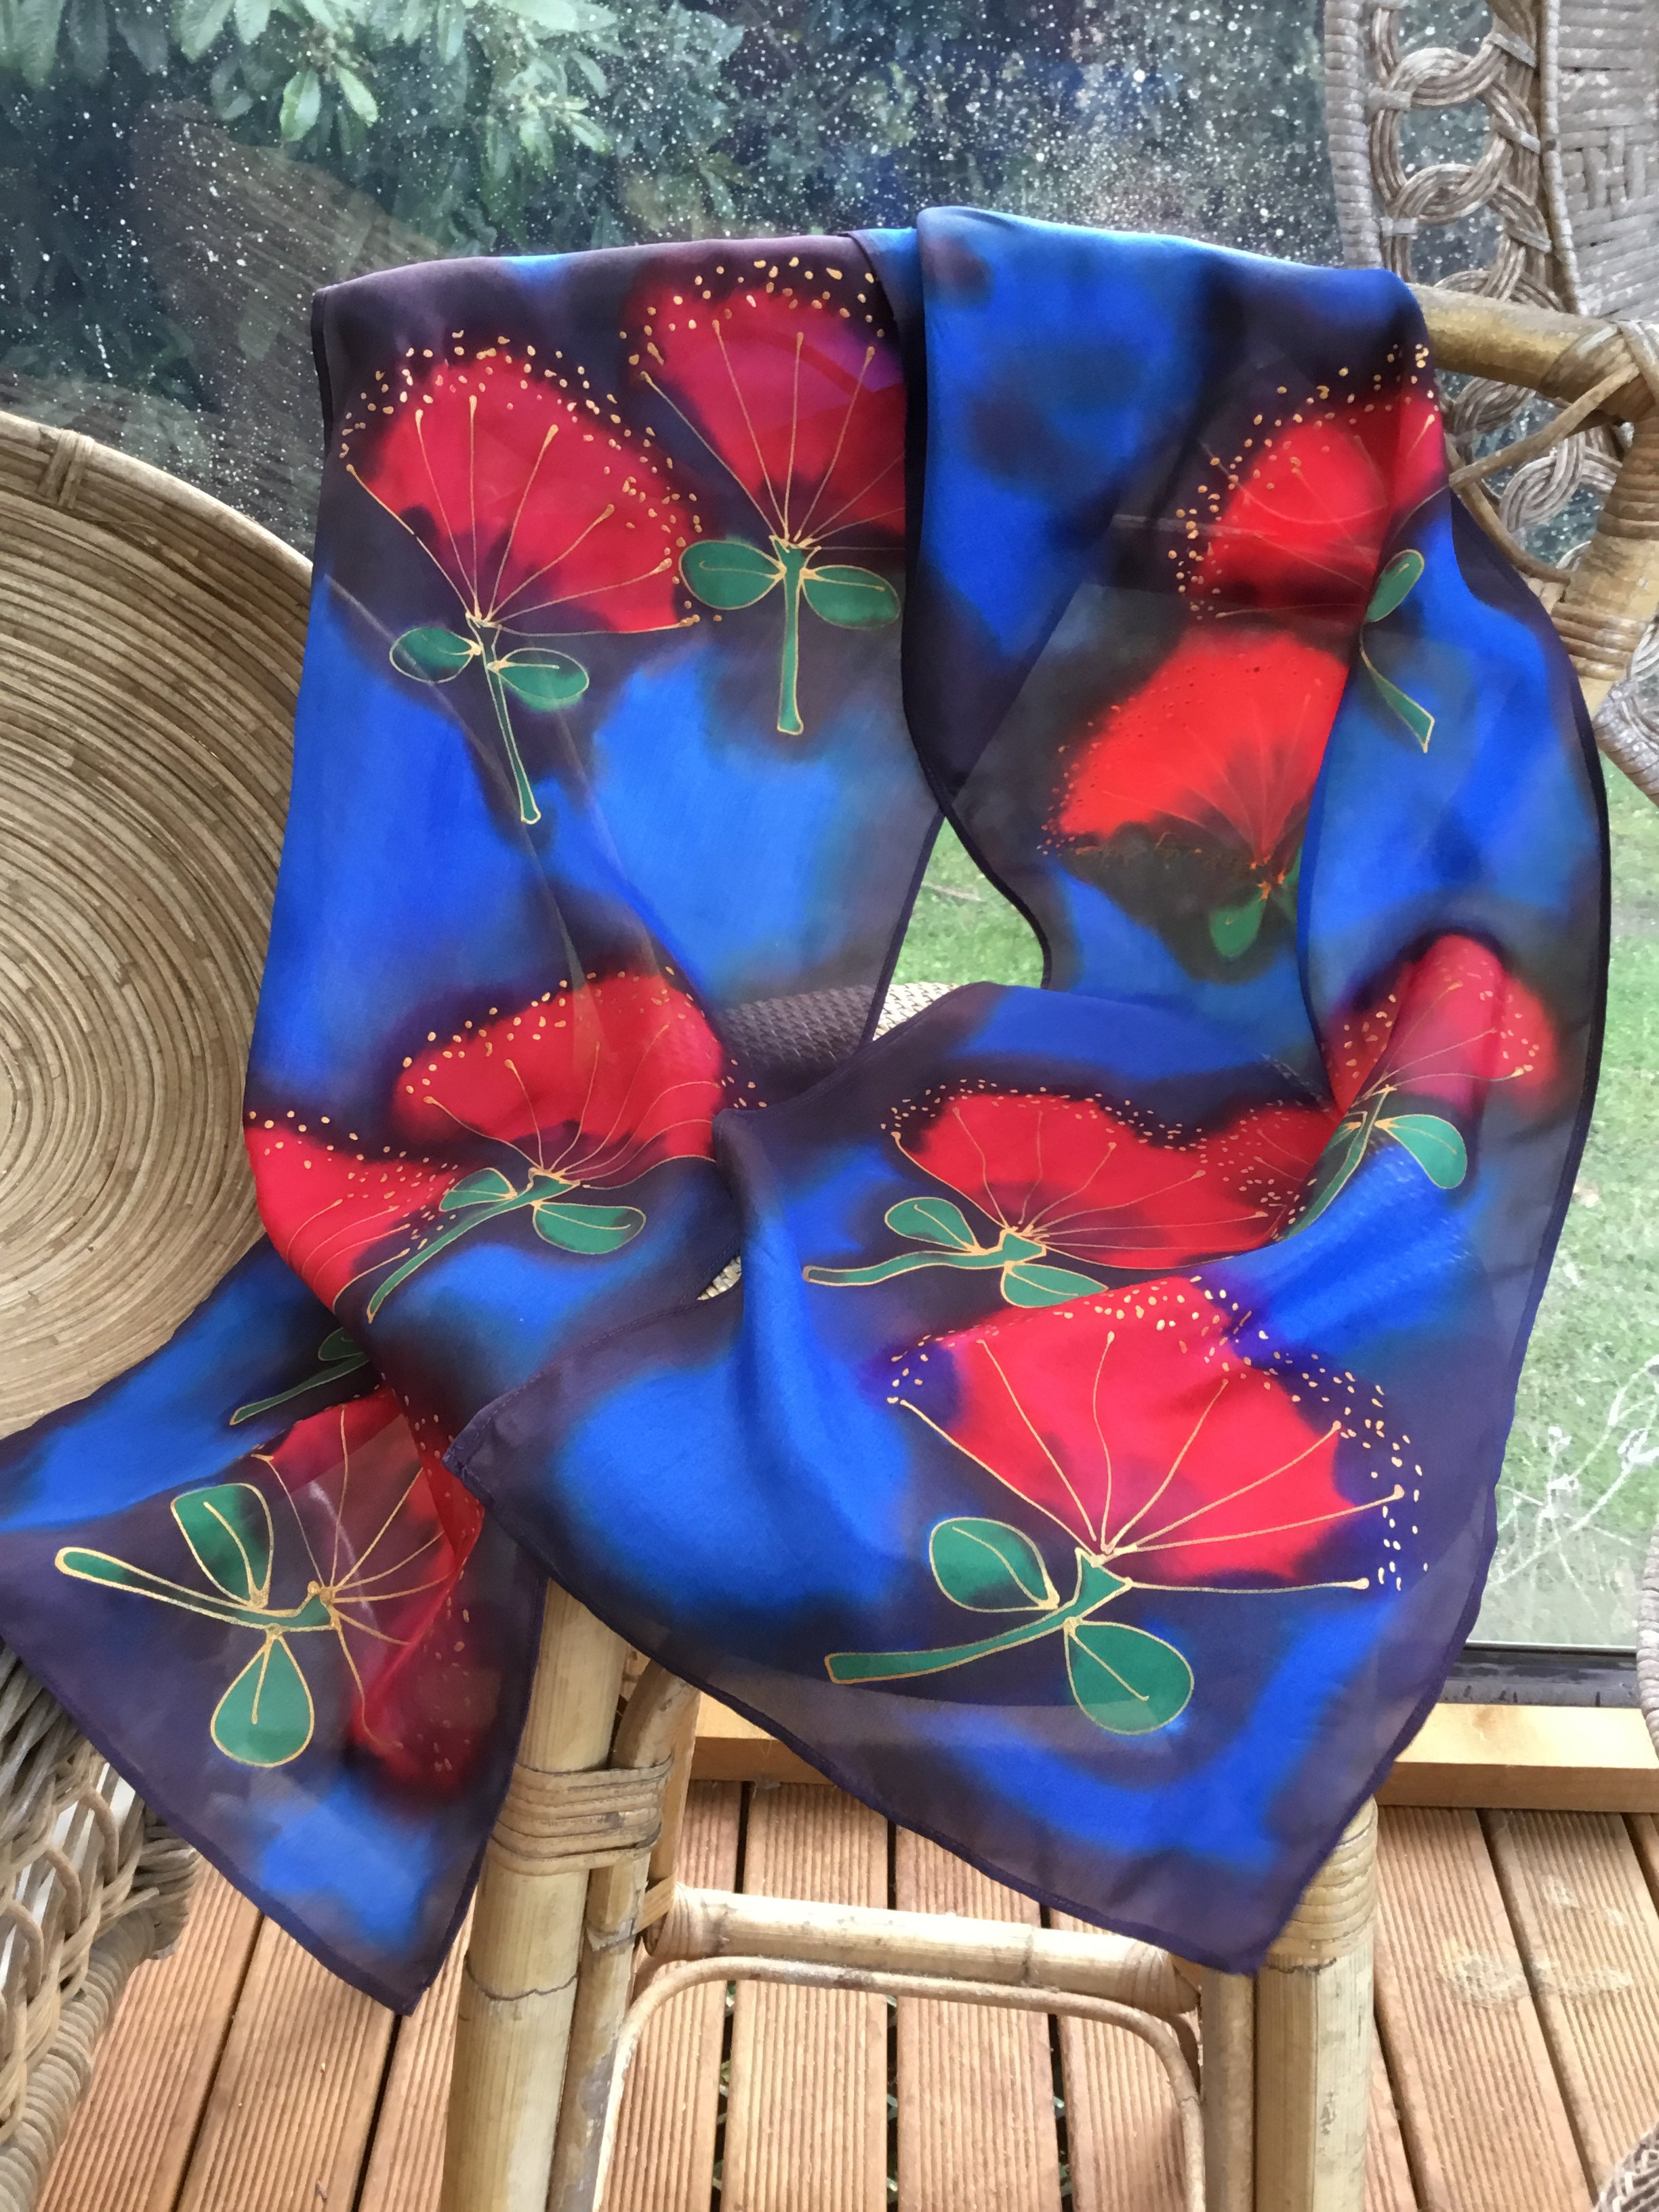 Pohutukawa, Red Flowers on Blue -  Hand painted Silk Scarf - Satherley Silks NZ